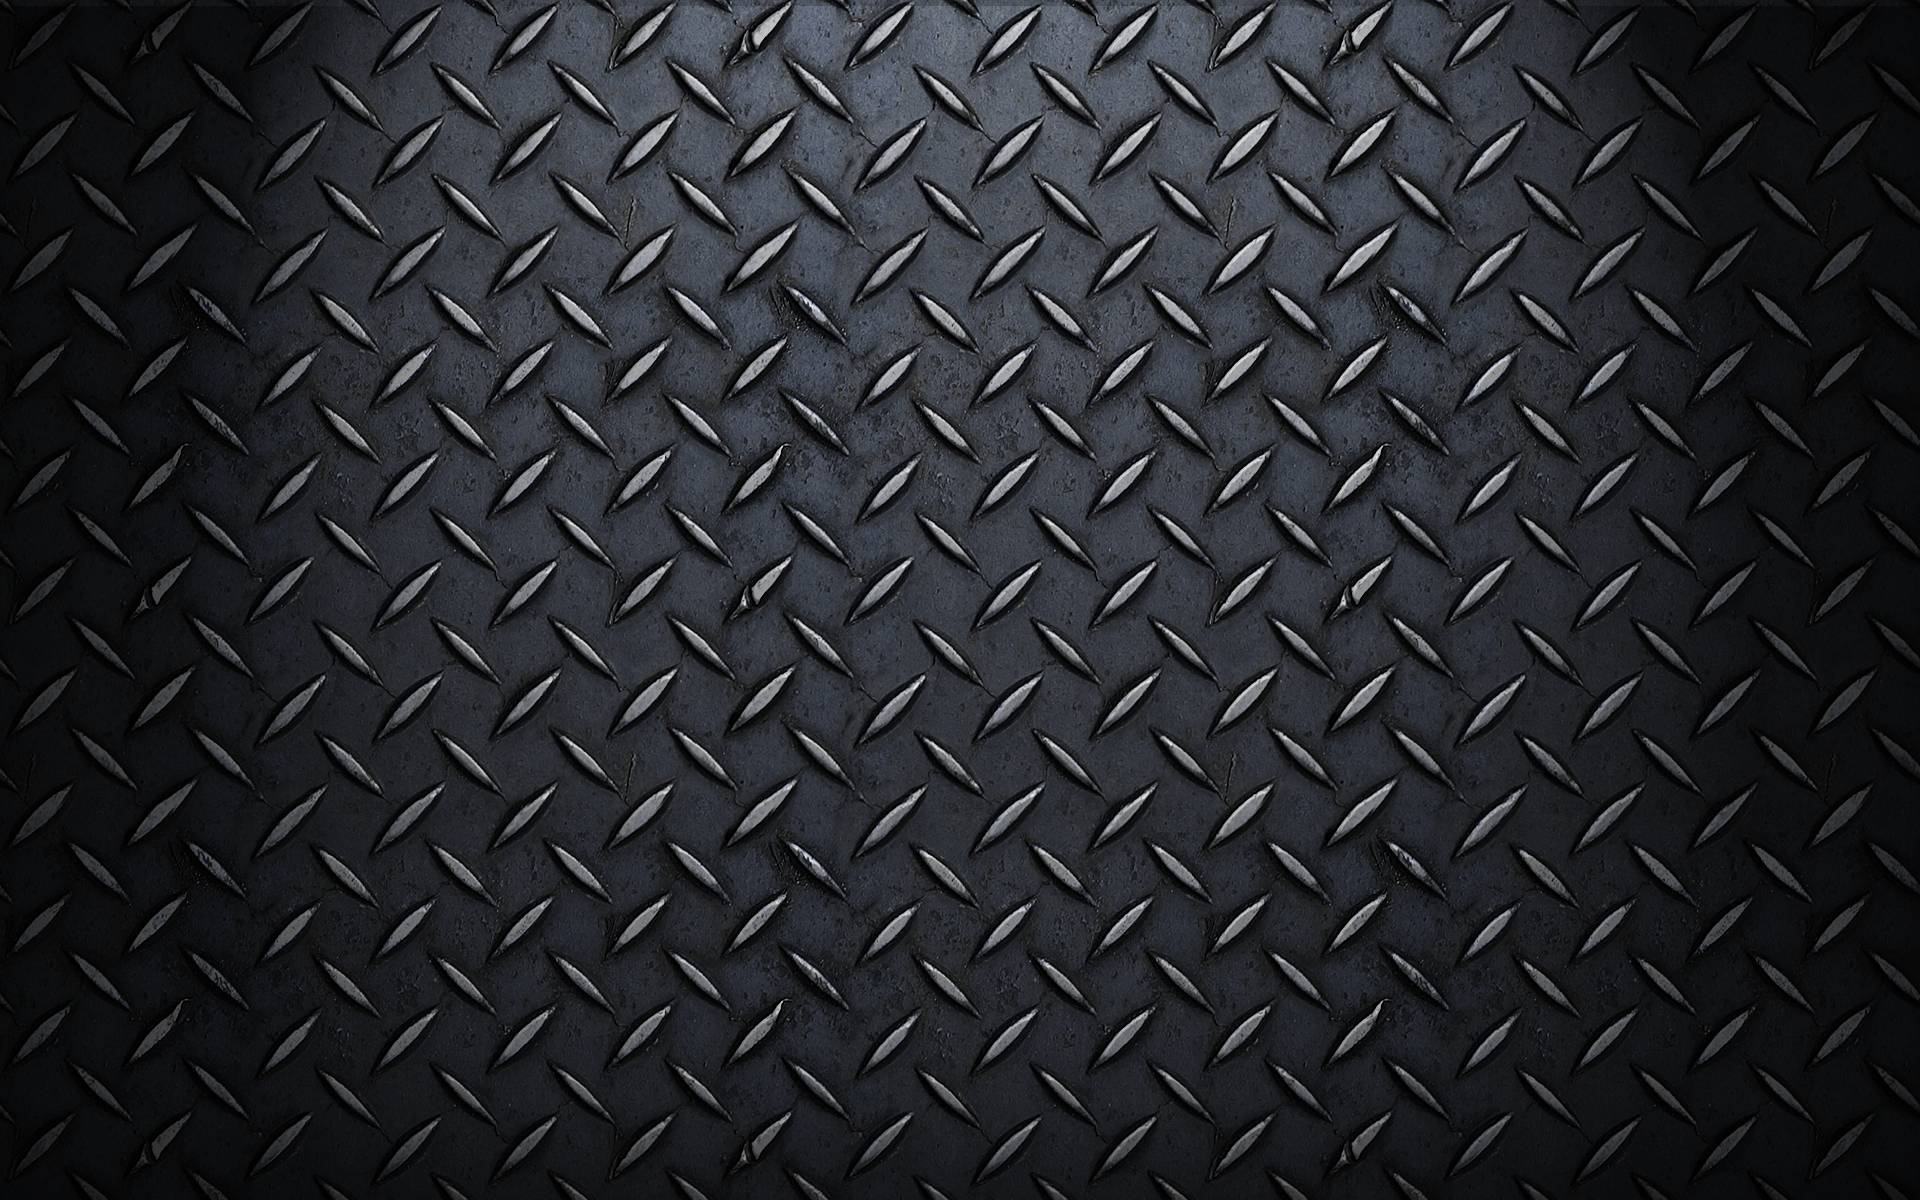 Black-Metal-Texture-%C3%97-Metal-Texture-wallpaper-wp3803222